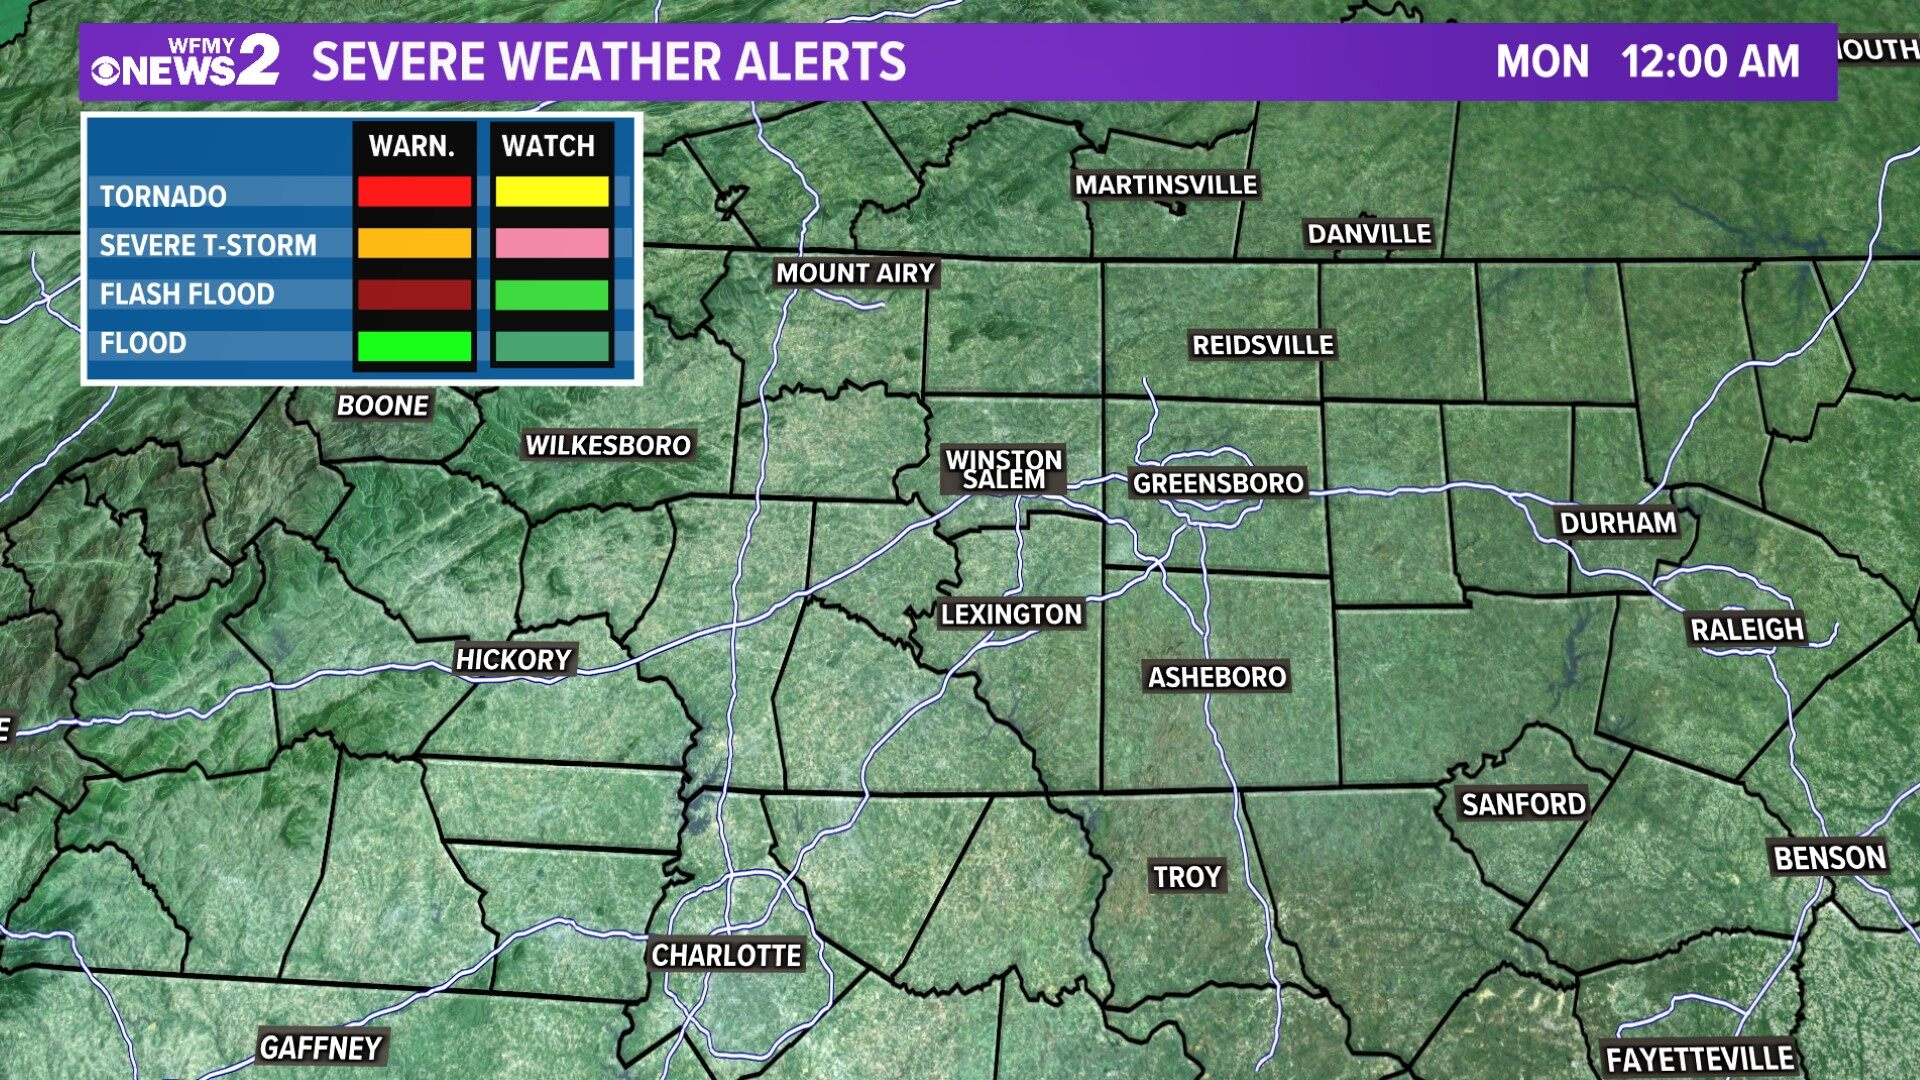 Local Severe Weather Alerts